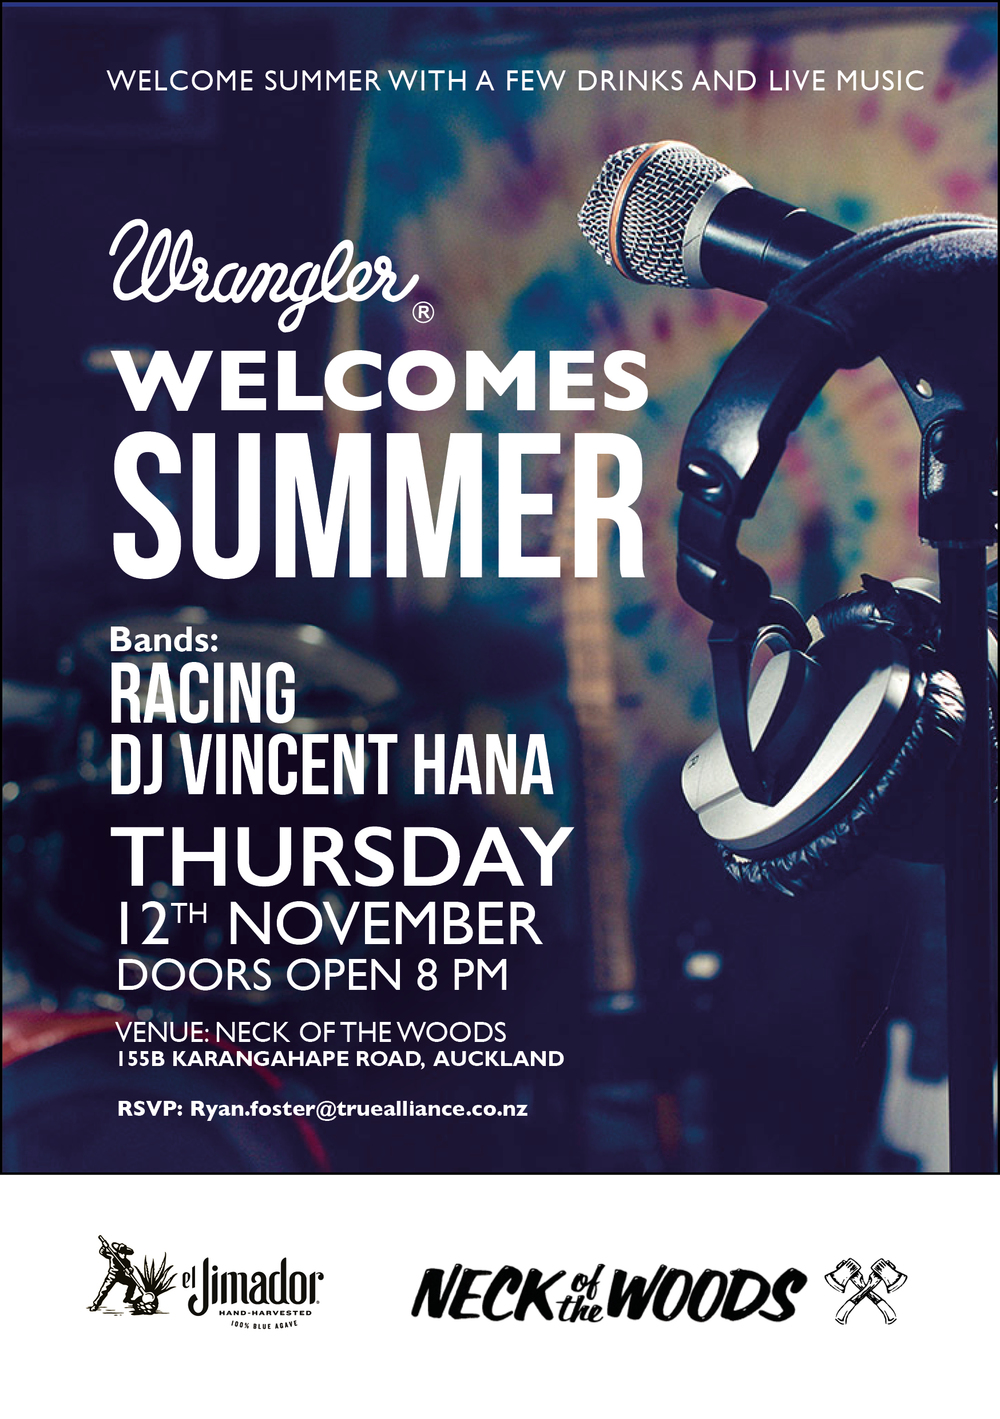 WRA277_WRANGLER_INVITE_WELCOME_SUMMER.jpg